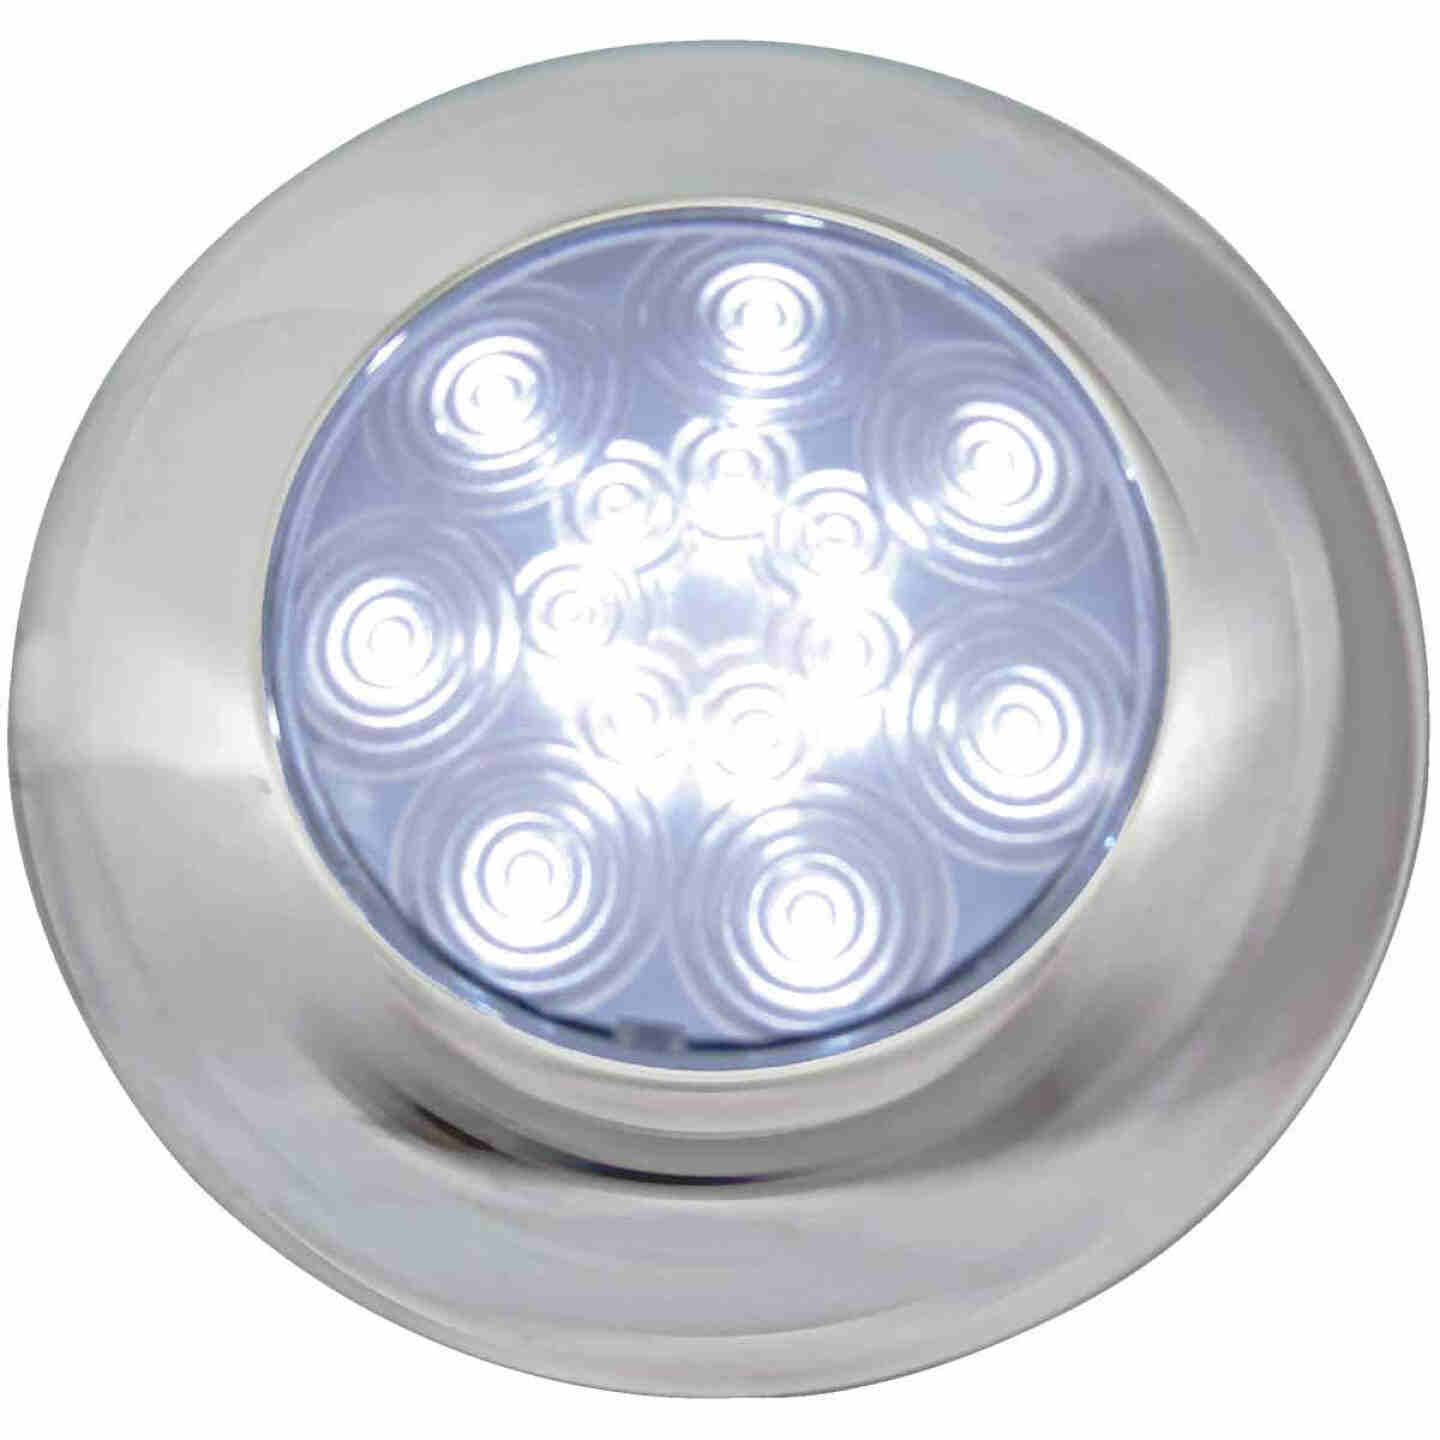 Peterson 9-16 V. White Round Dome Light Image 1